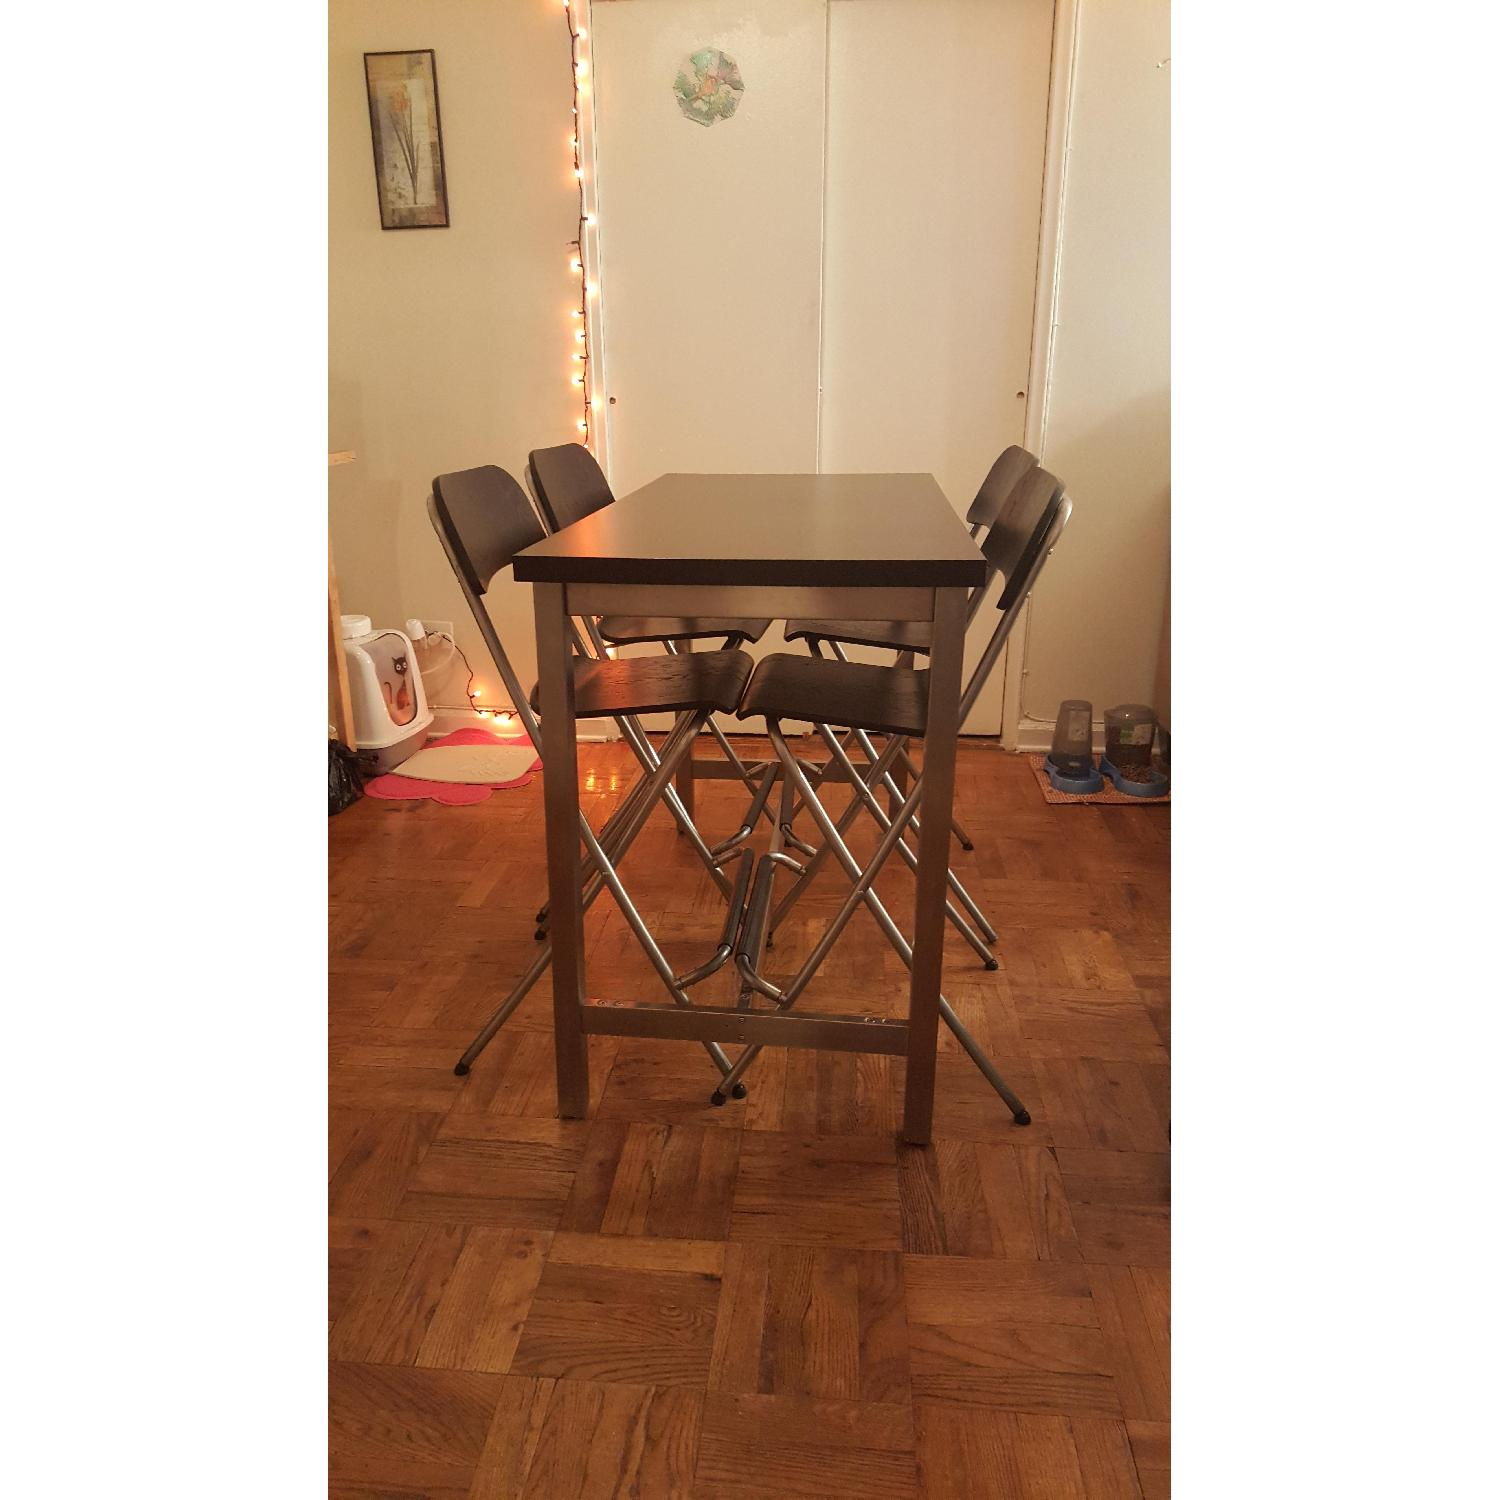 Ikea High Dining Table w/ 4 Chairs - image-2